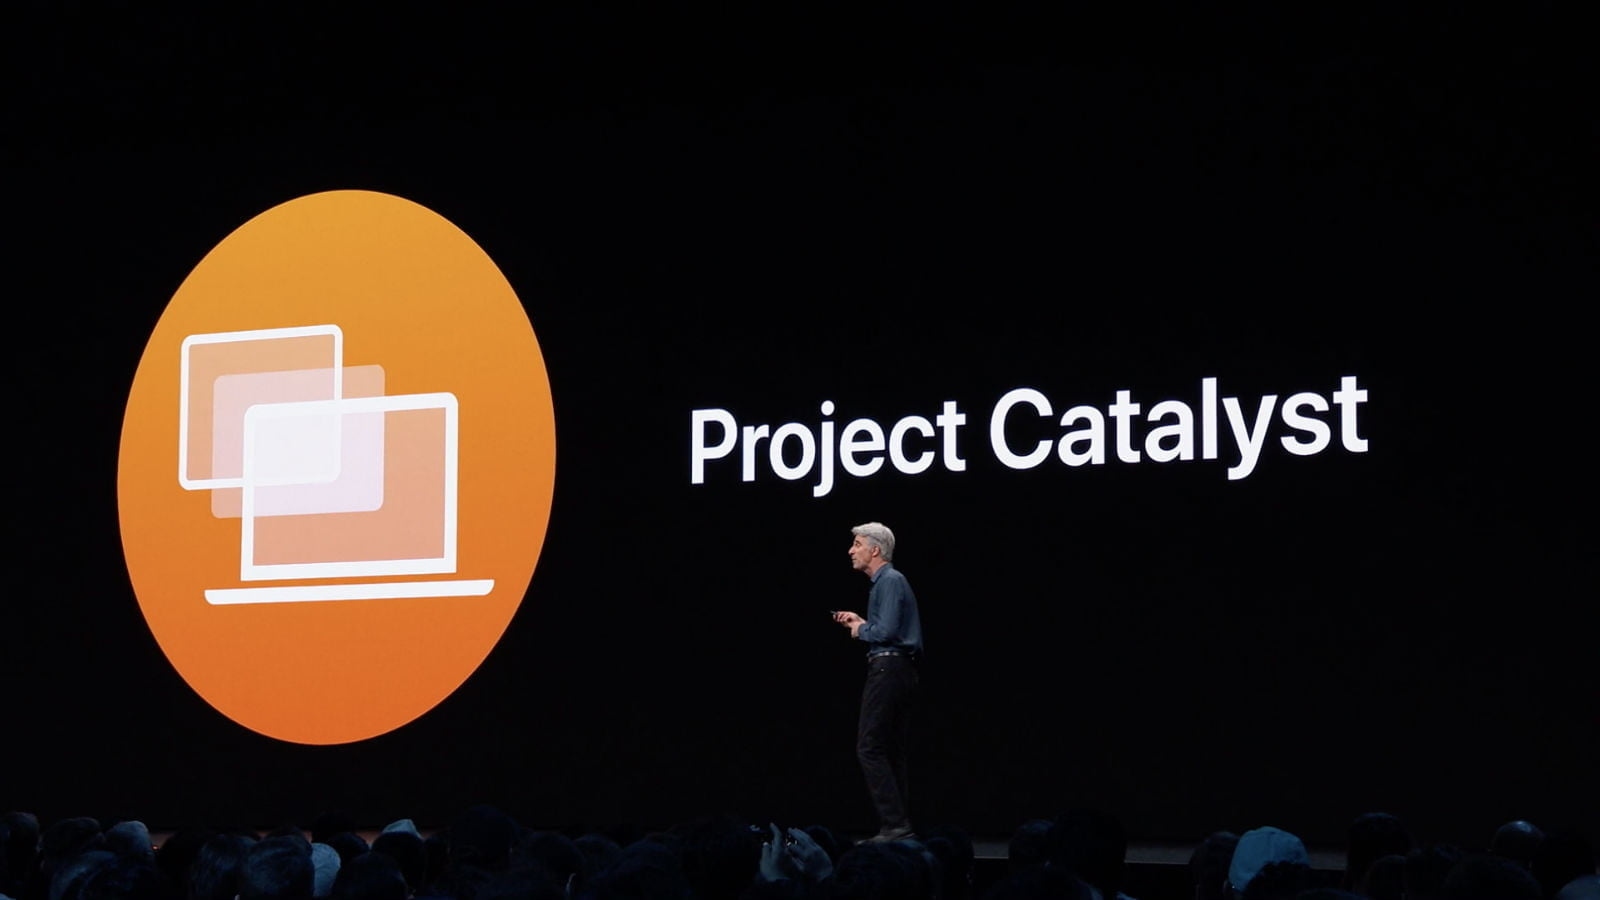 What is Project Catalyst? Here's everything you need to know